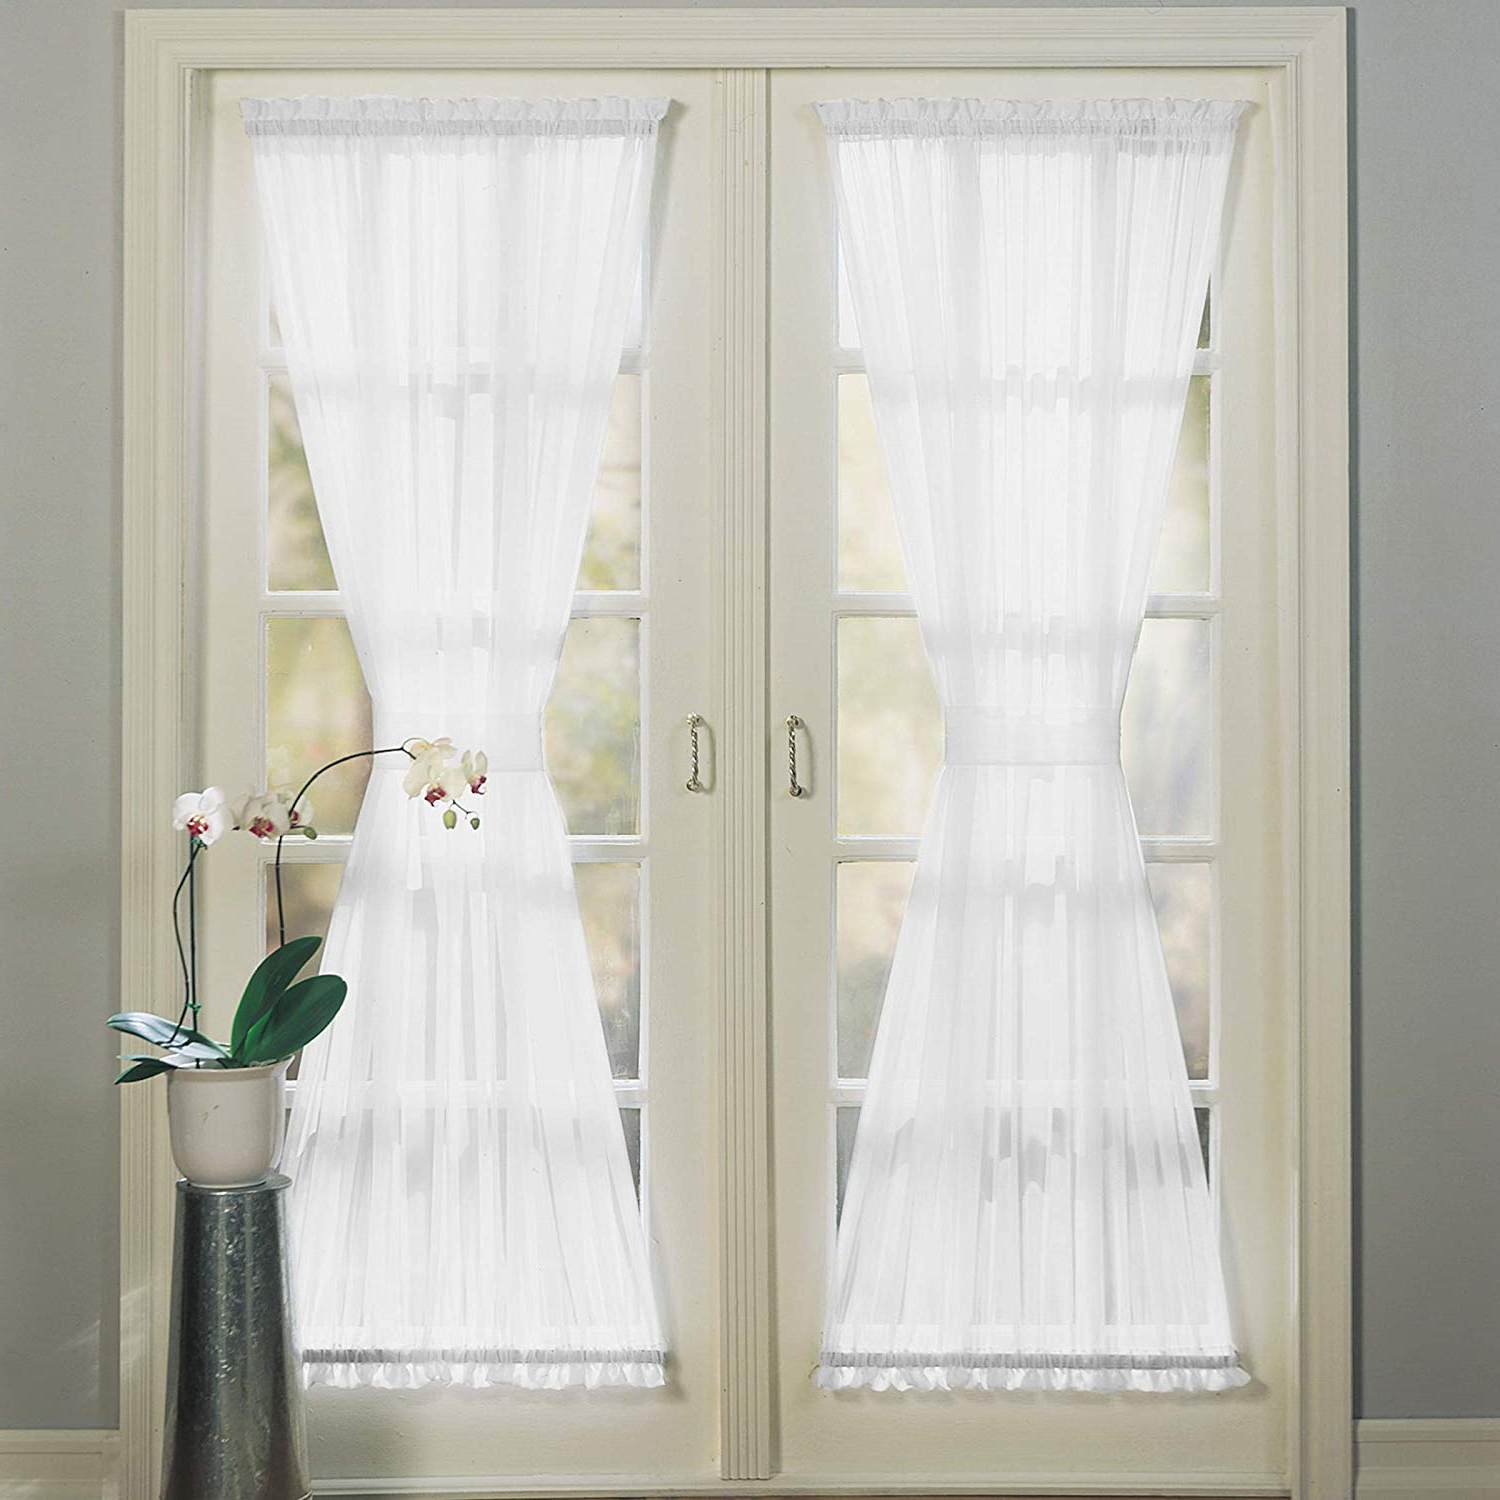 "Emily Sheer Voile Single Curtain Panels Throughout Popular No. 918 Emily Sheer Voile Single Curtain Door Panel, 59"" X 72"", White (Gallery 1 of 20)"